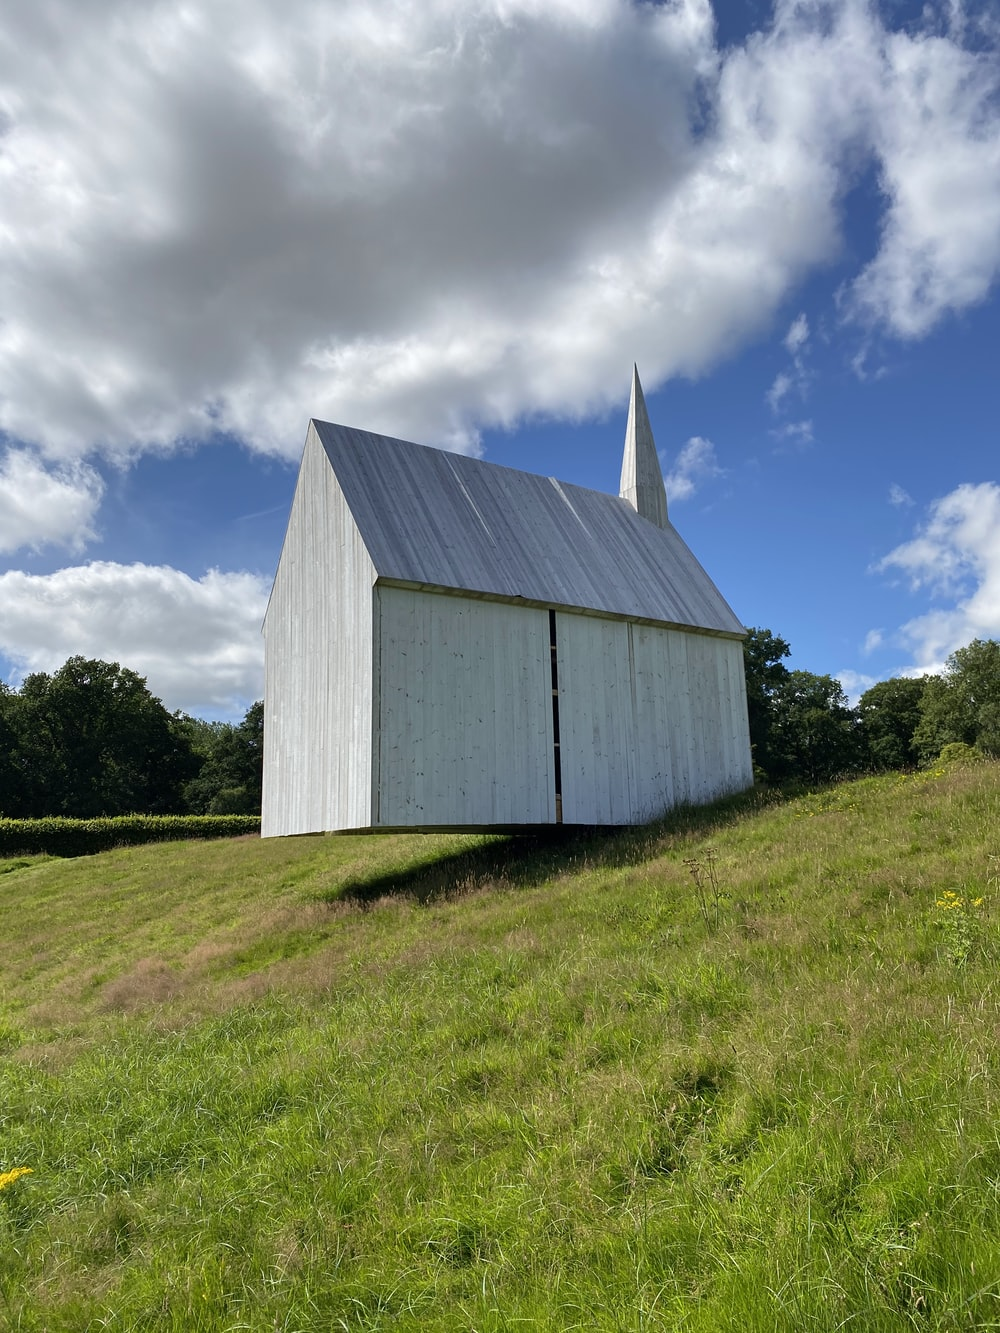 white wooden barn on green grass field under blue sky and white clouds during daytime